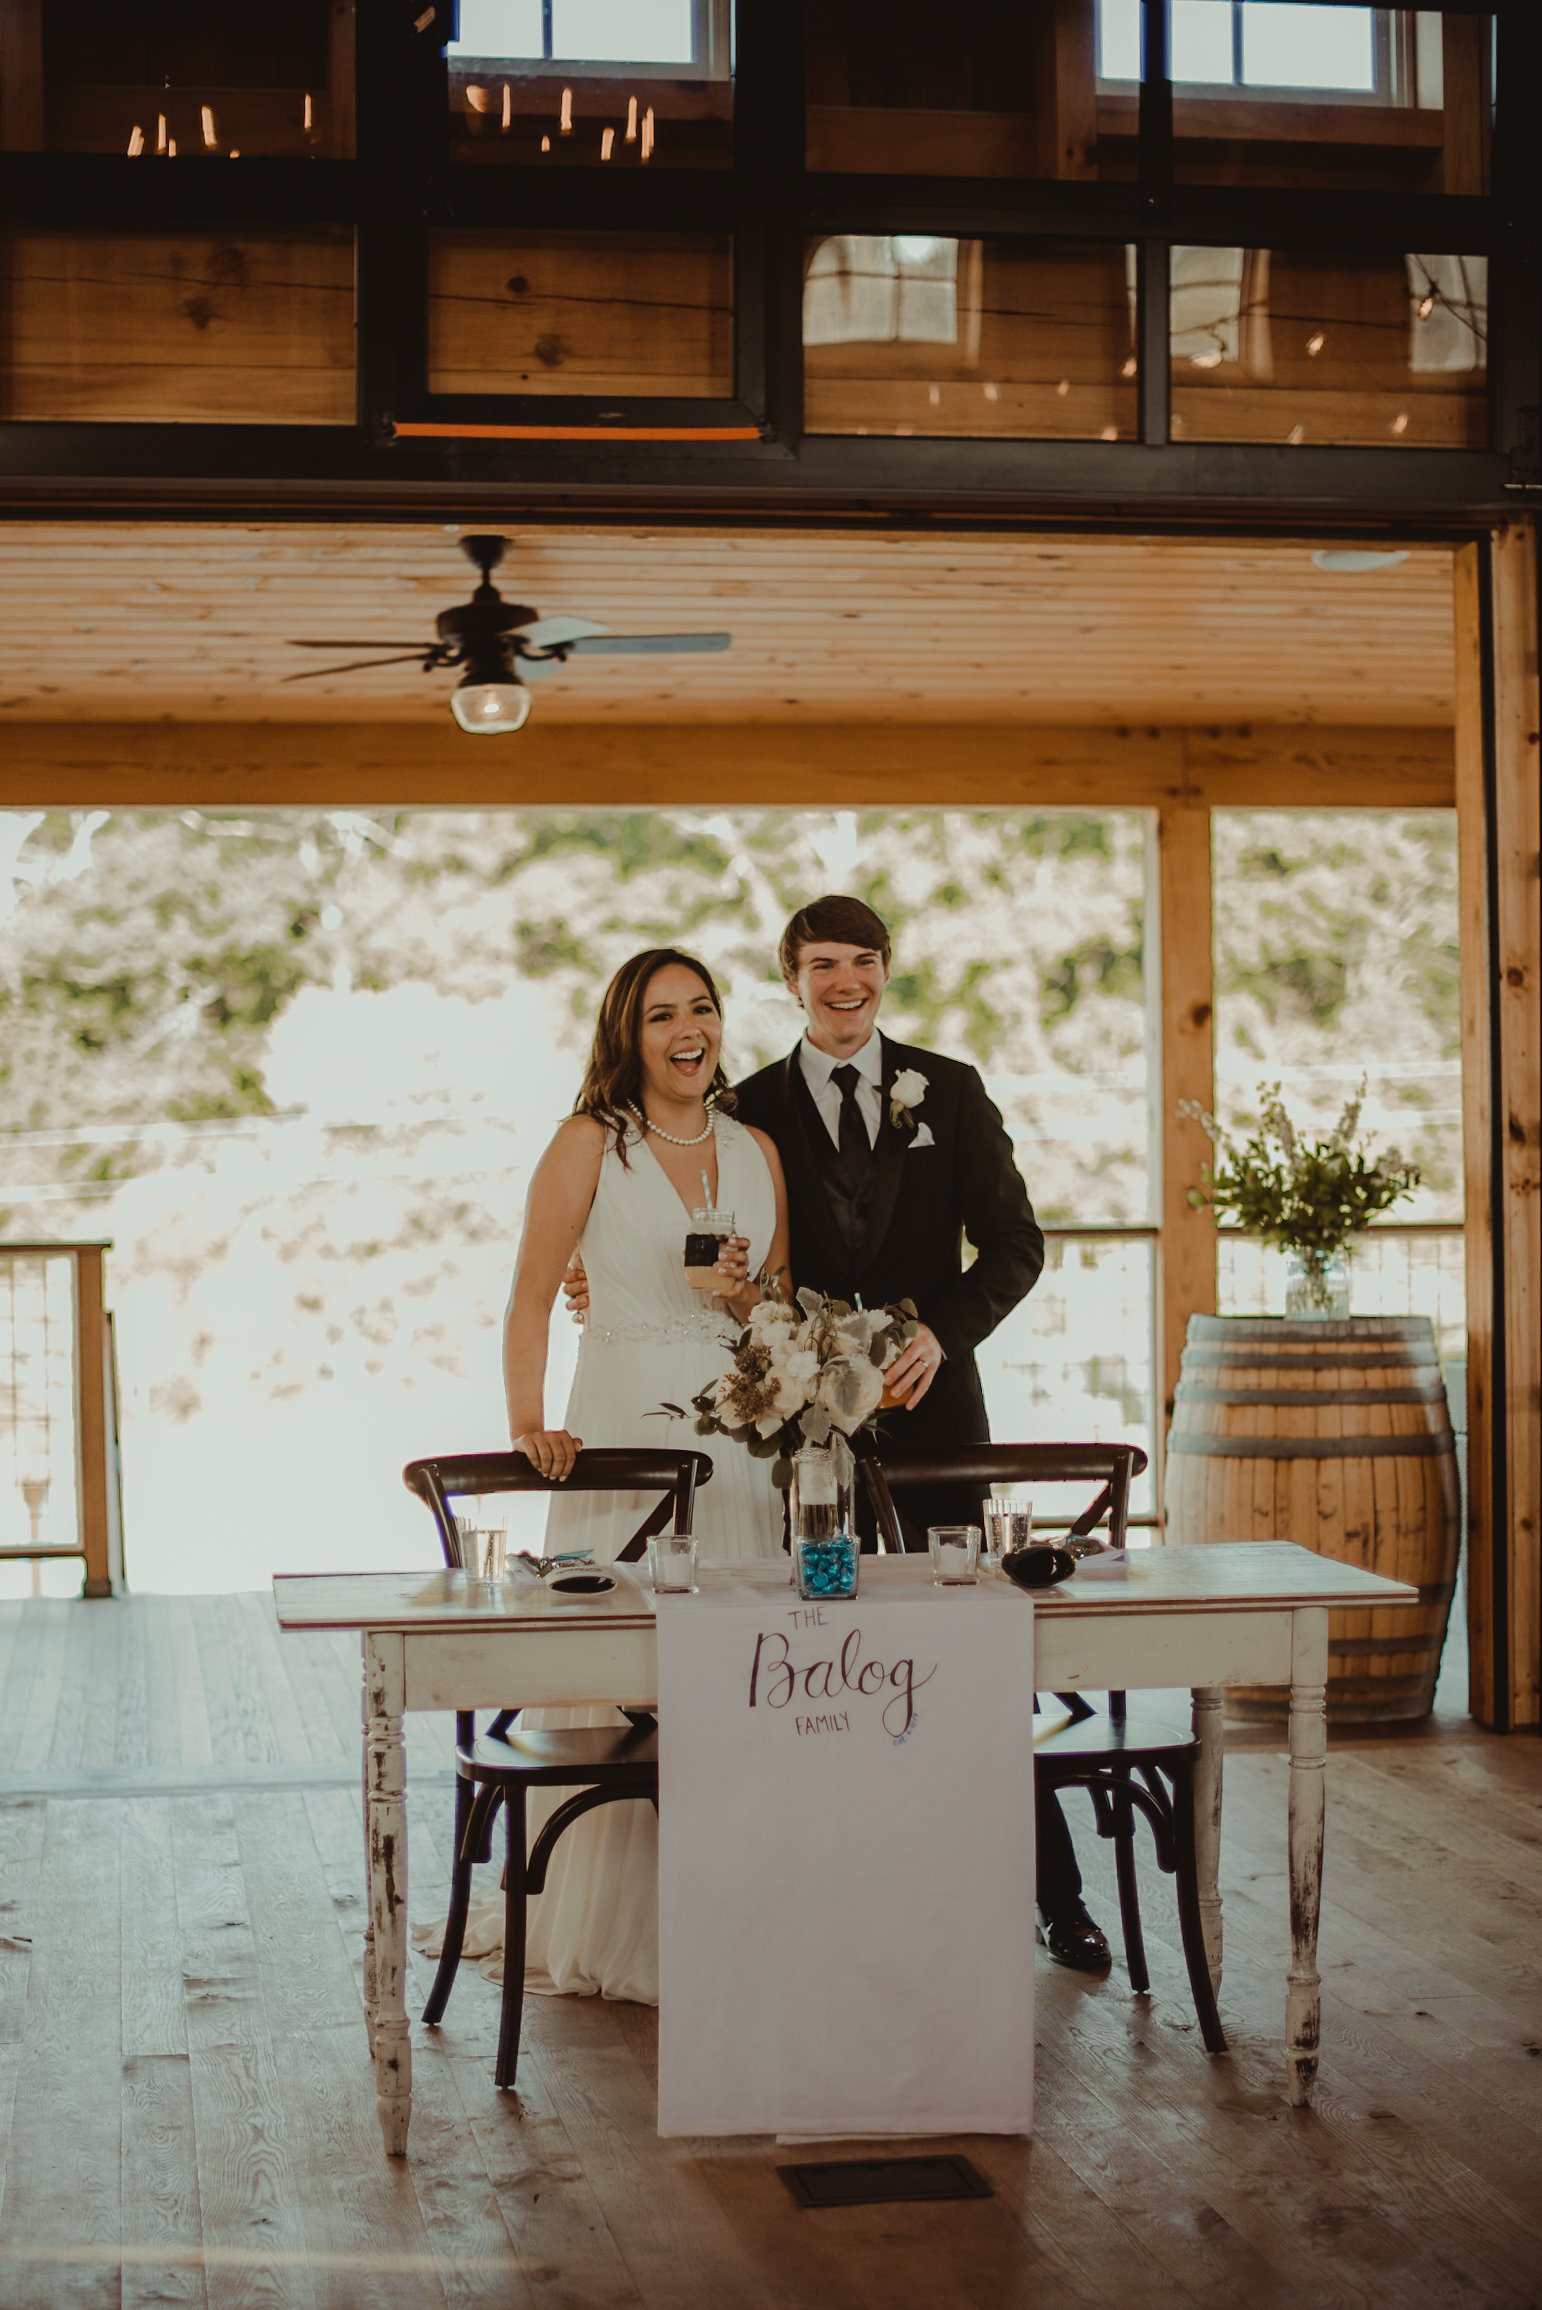 Bride and groom in front of table